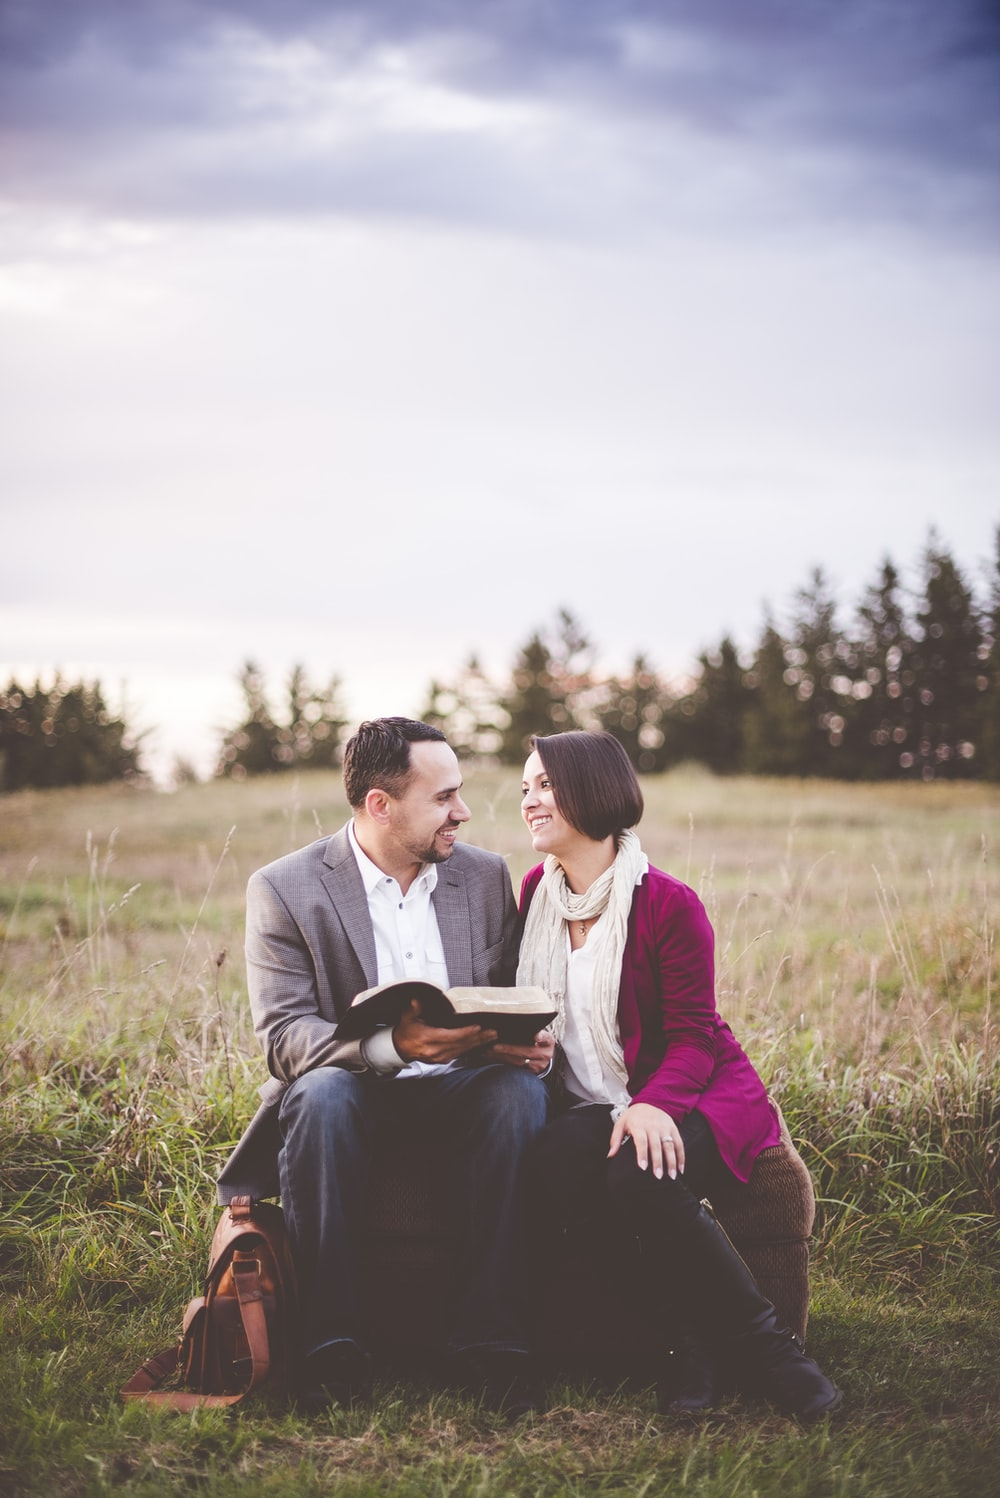 photo of man reading book to woman under grey cloudy sky